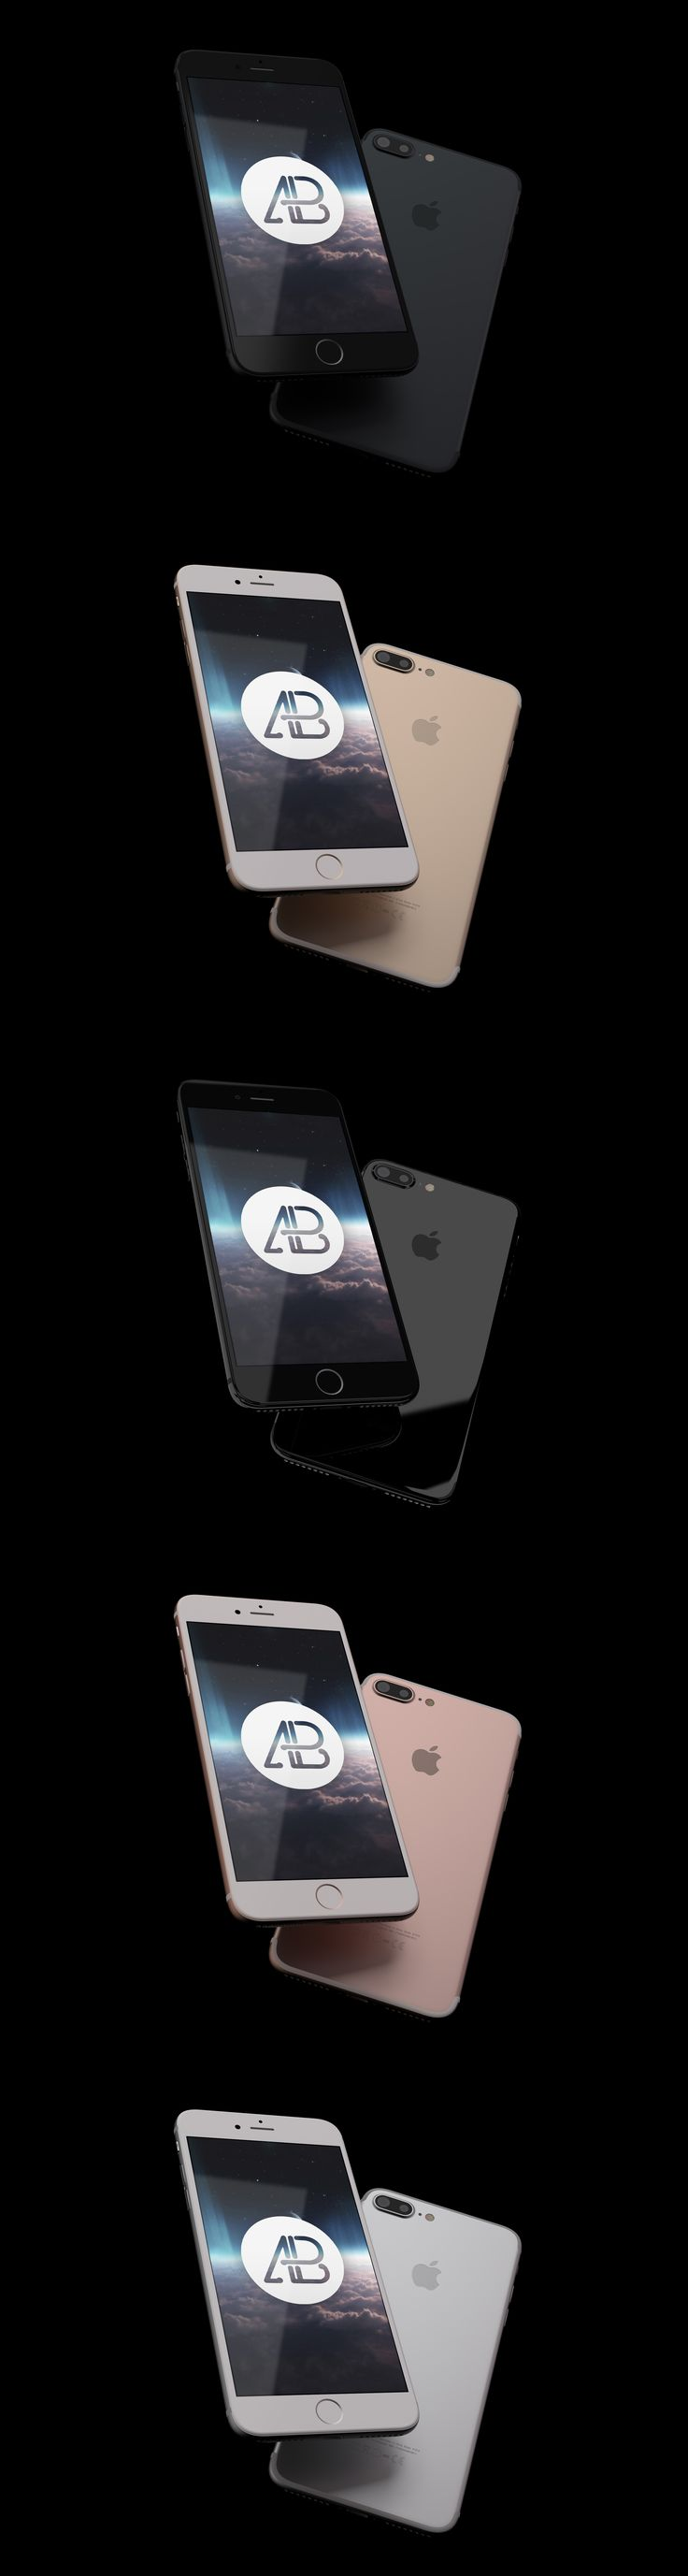 Todays freebie is a Realistic iPhone 7 Plus Mockup Pack created by Anthony Boyd. This mockup features iPhone 7 Plus floating in space with changeable colors. You can choose between black, jet black, gold, rose gold, and silver. This mockup is free for both personal and commercial use.